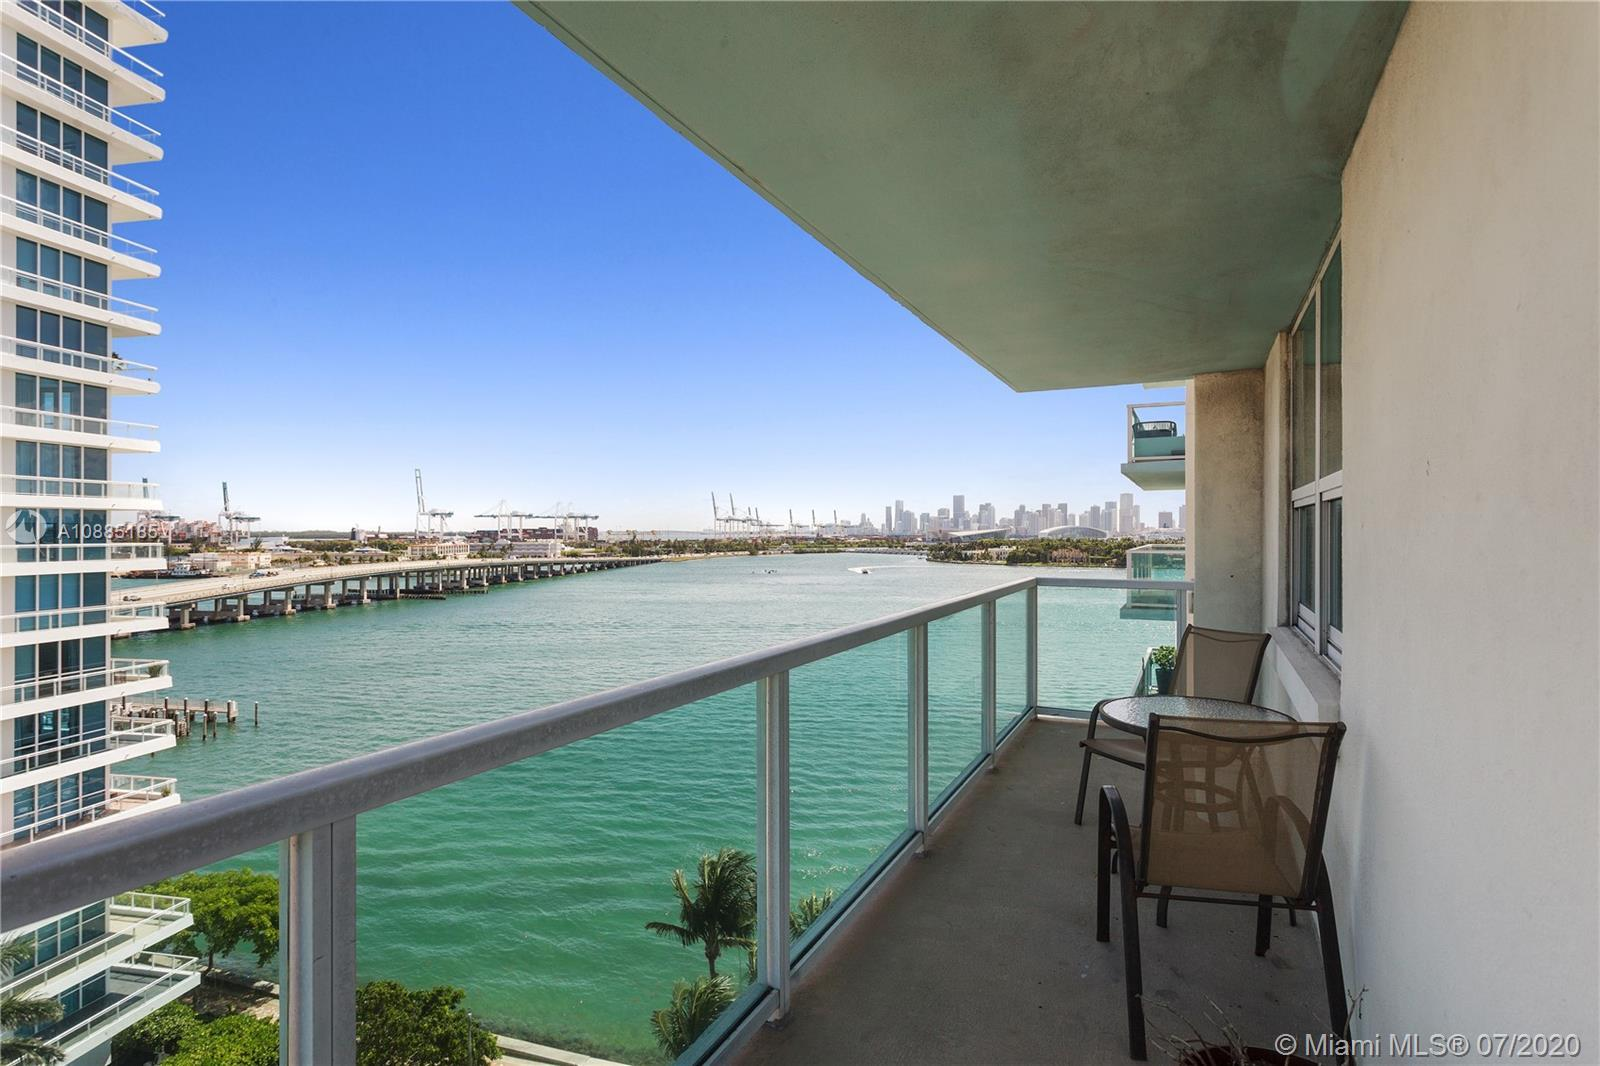 Southwest Facing Two Bed Two Bath Corner unit. Soak in the stunning views of Fisher Island, Star Isl